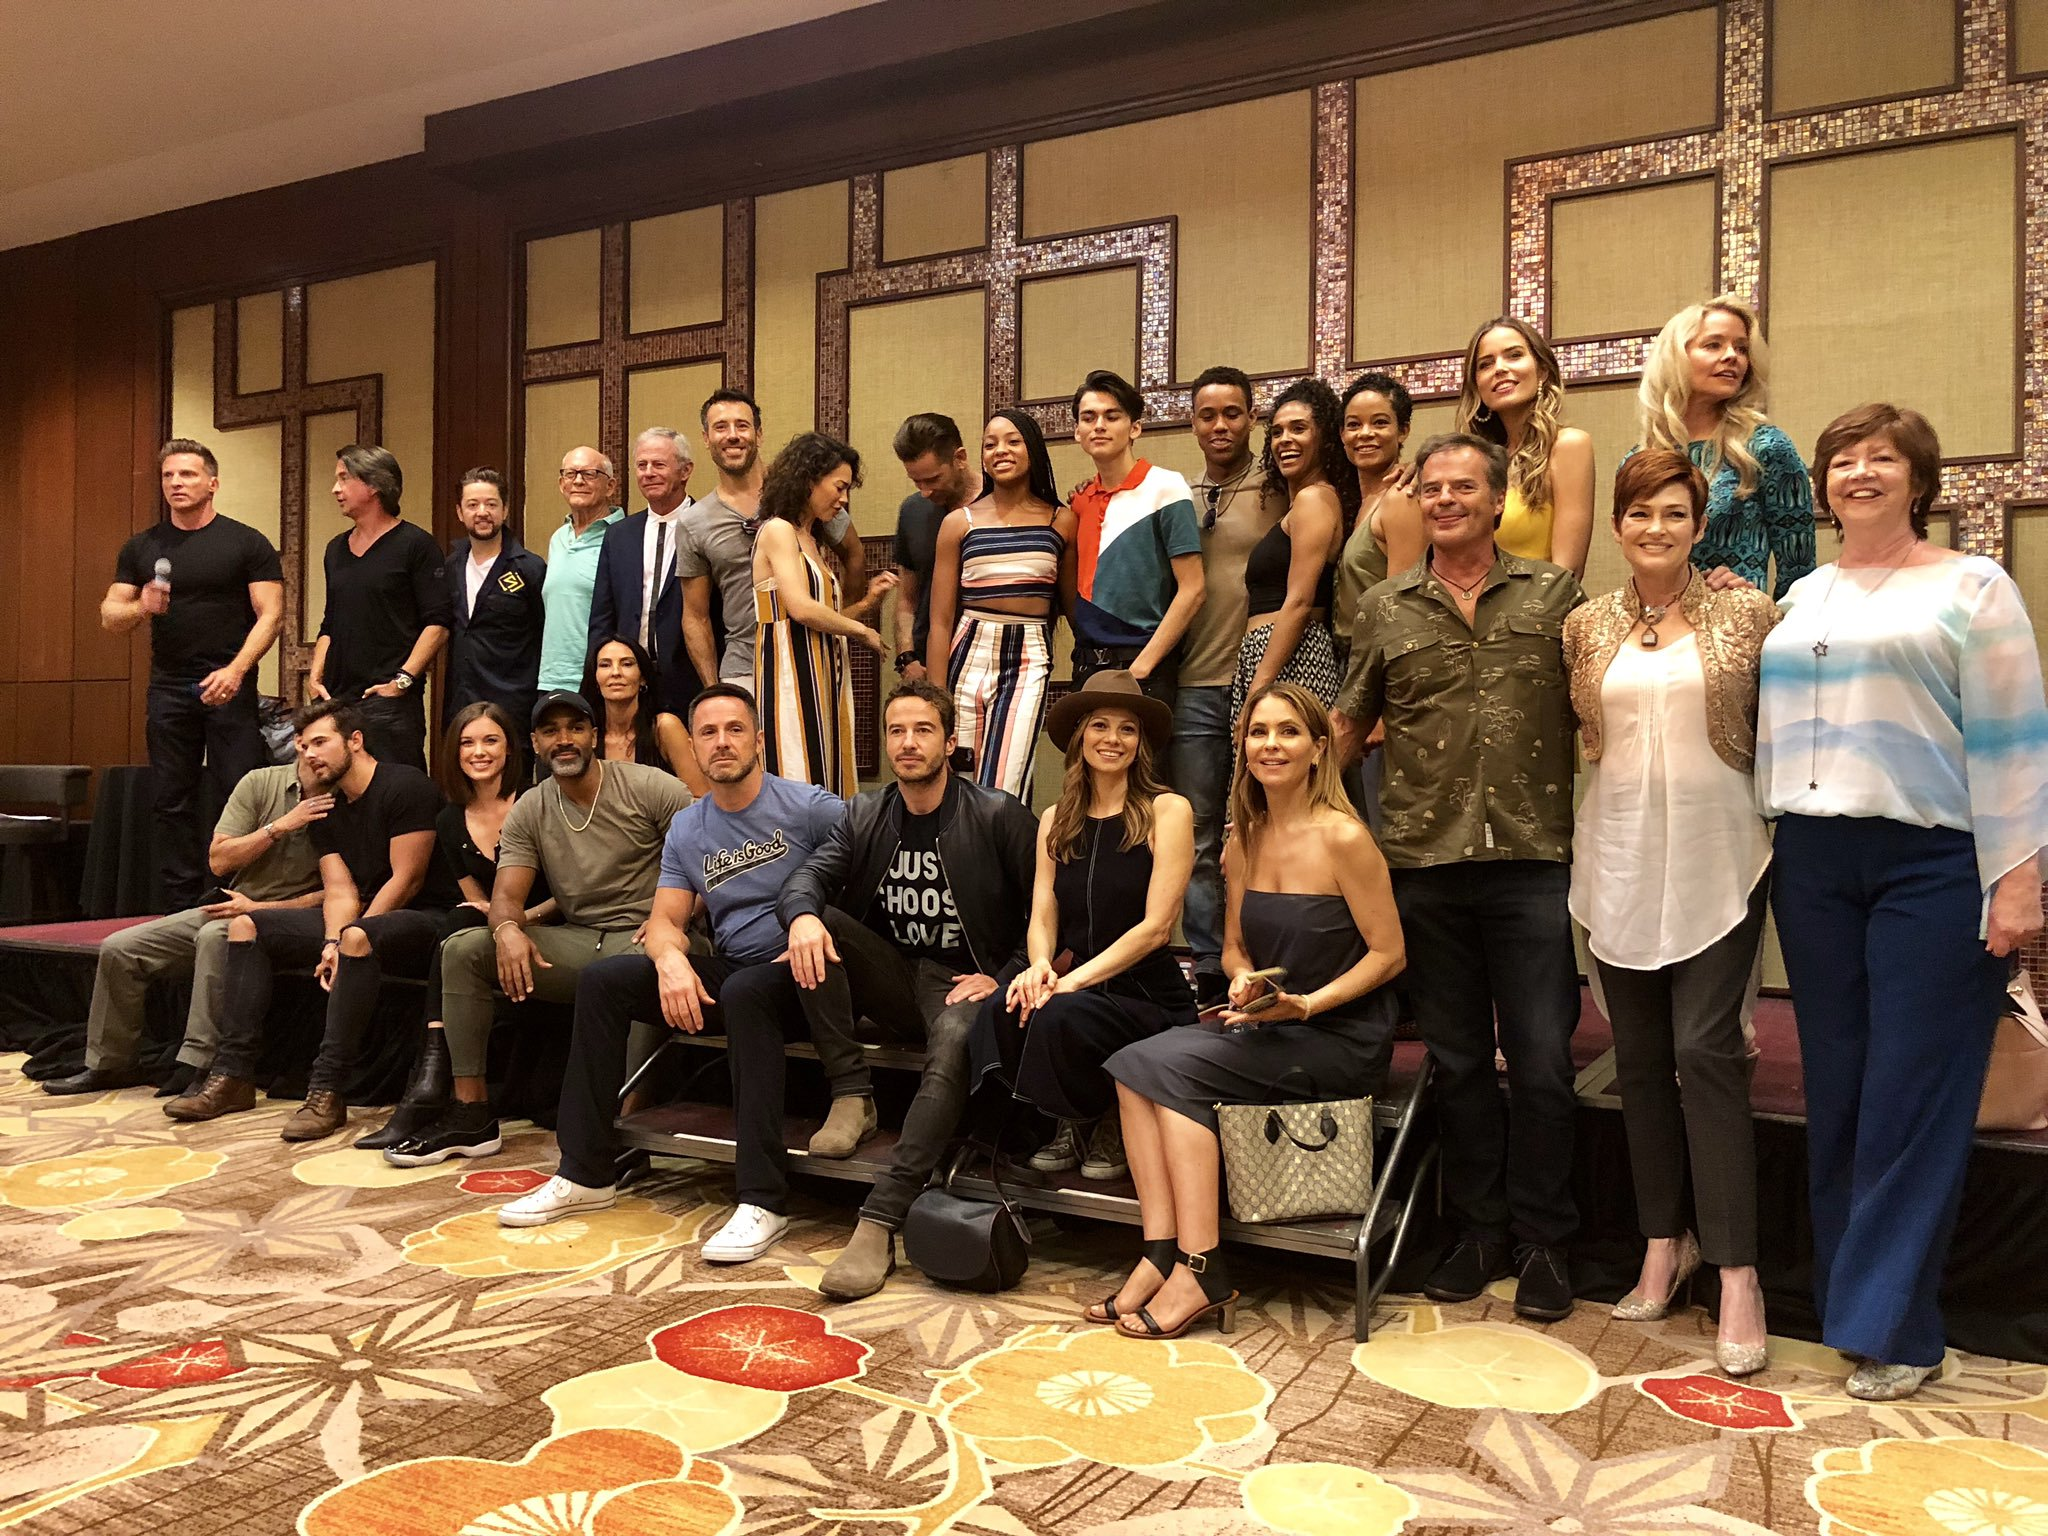 General Hospital cast photo at the GH Fan Club Weekend 2019